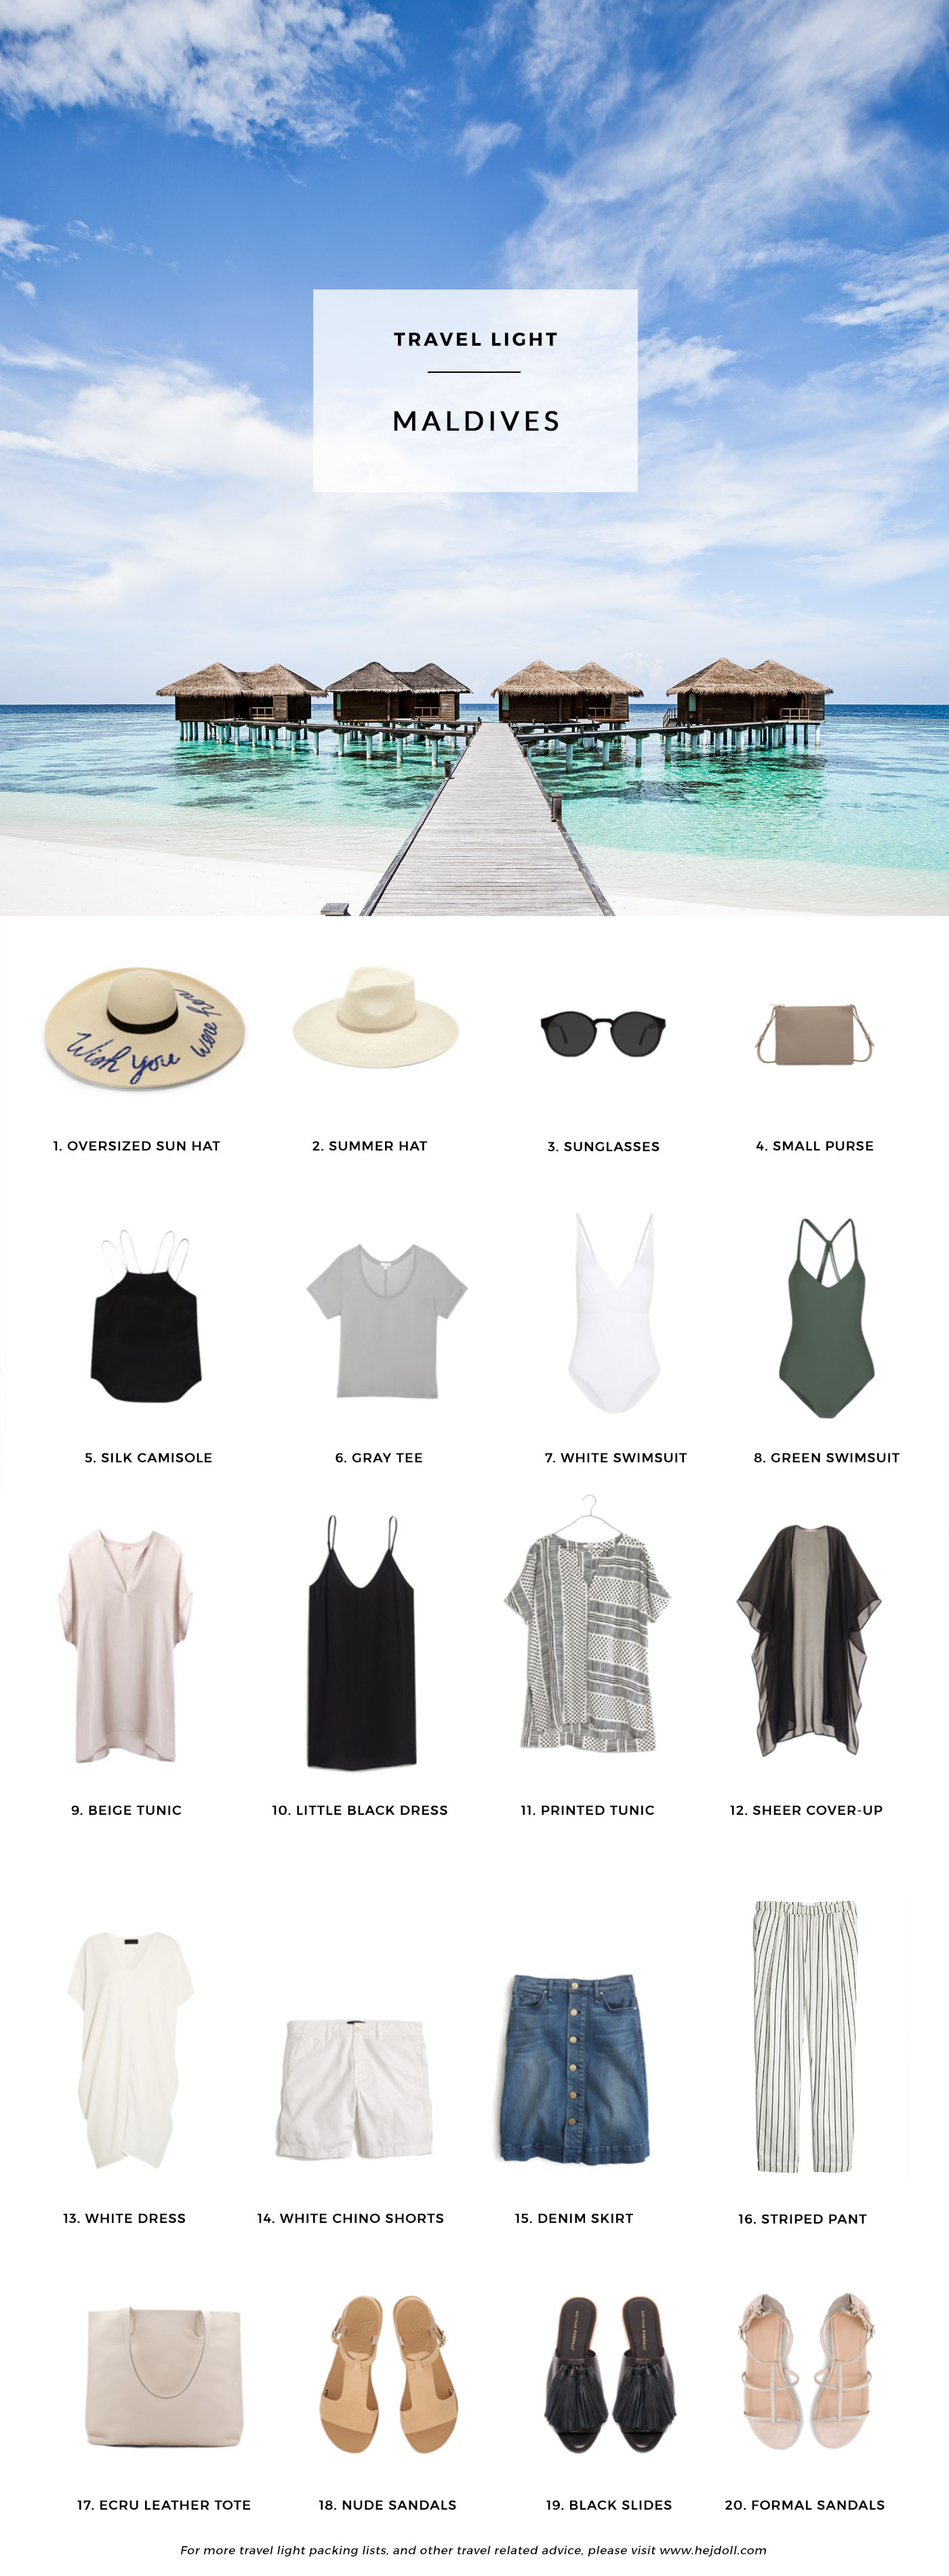 Pack For The Maldives Hej Doll Simple Modern Living By Jessica Doll